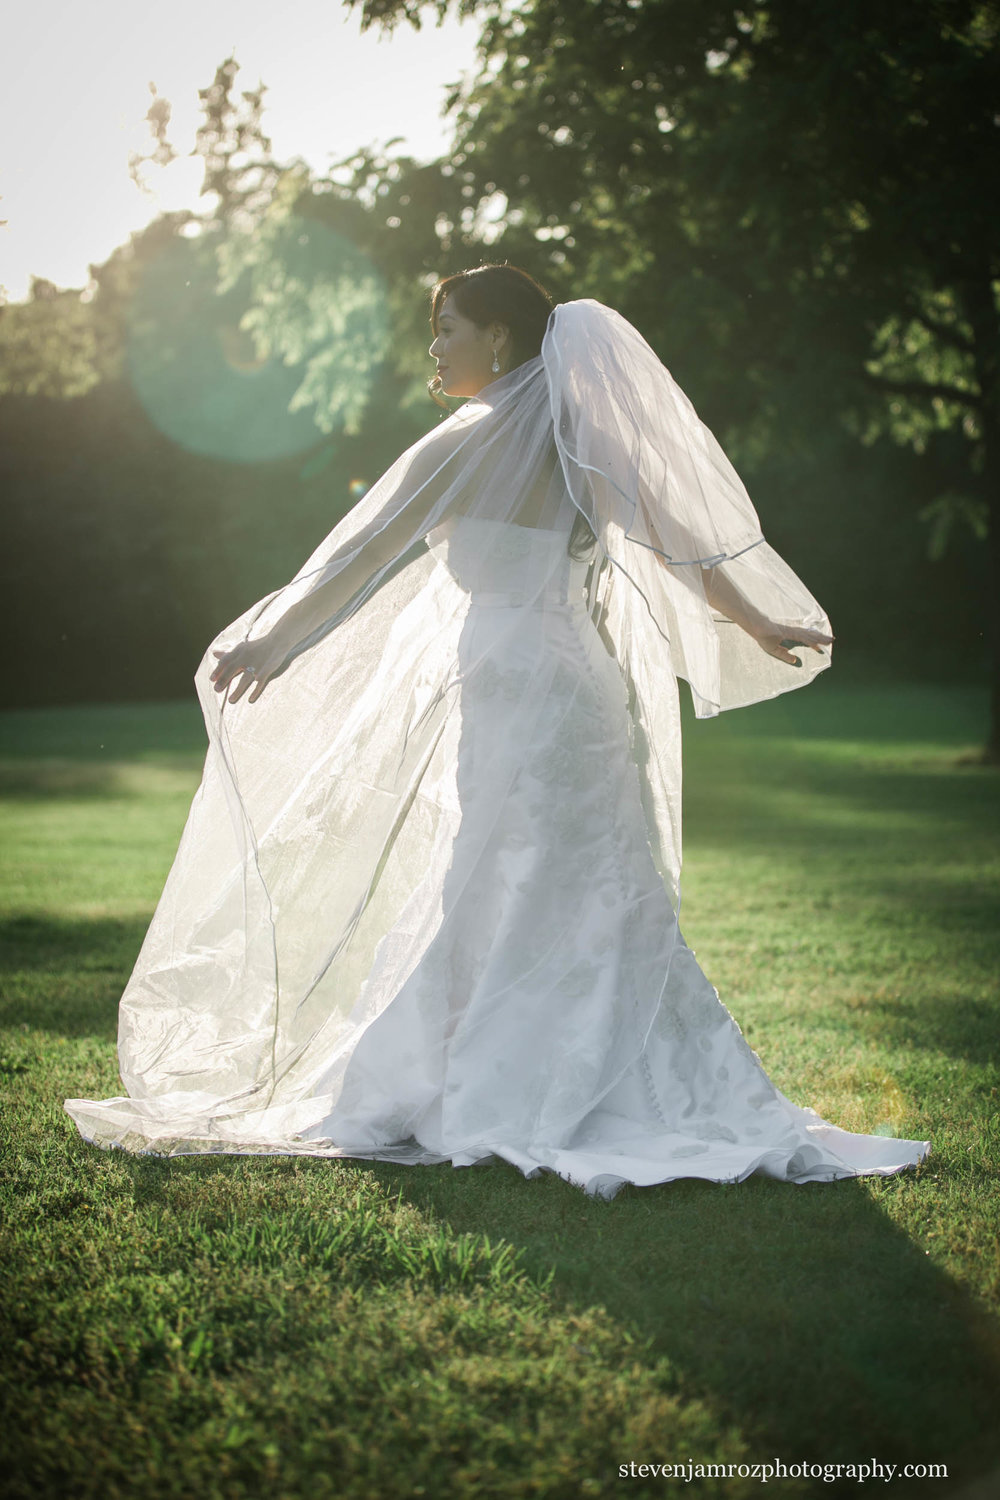 backlit-wedding-dress-in-raleigh-steven-jamroz-photography-0247.jpg